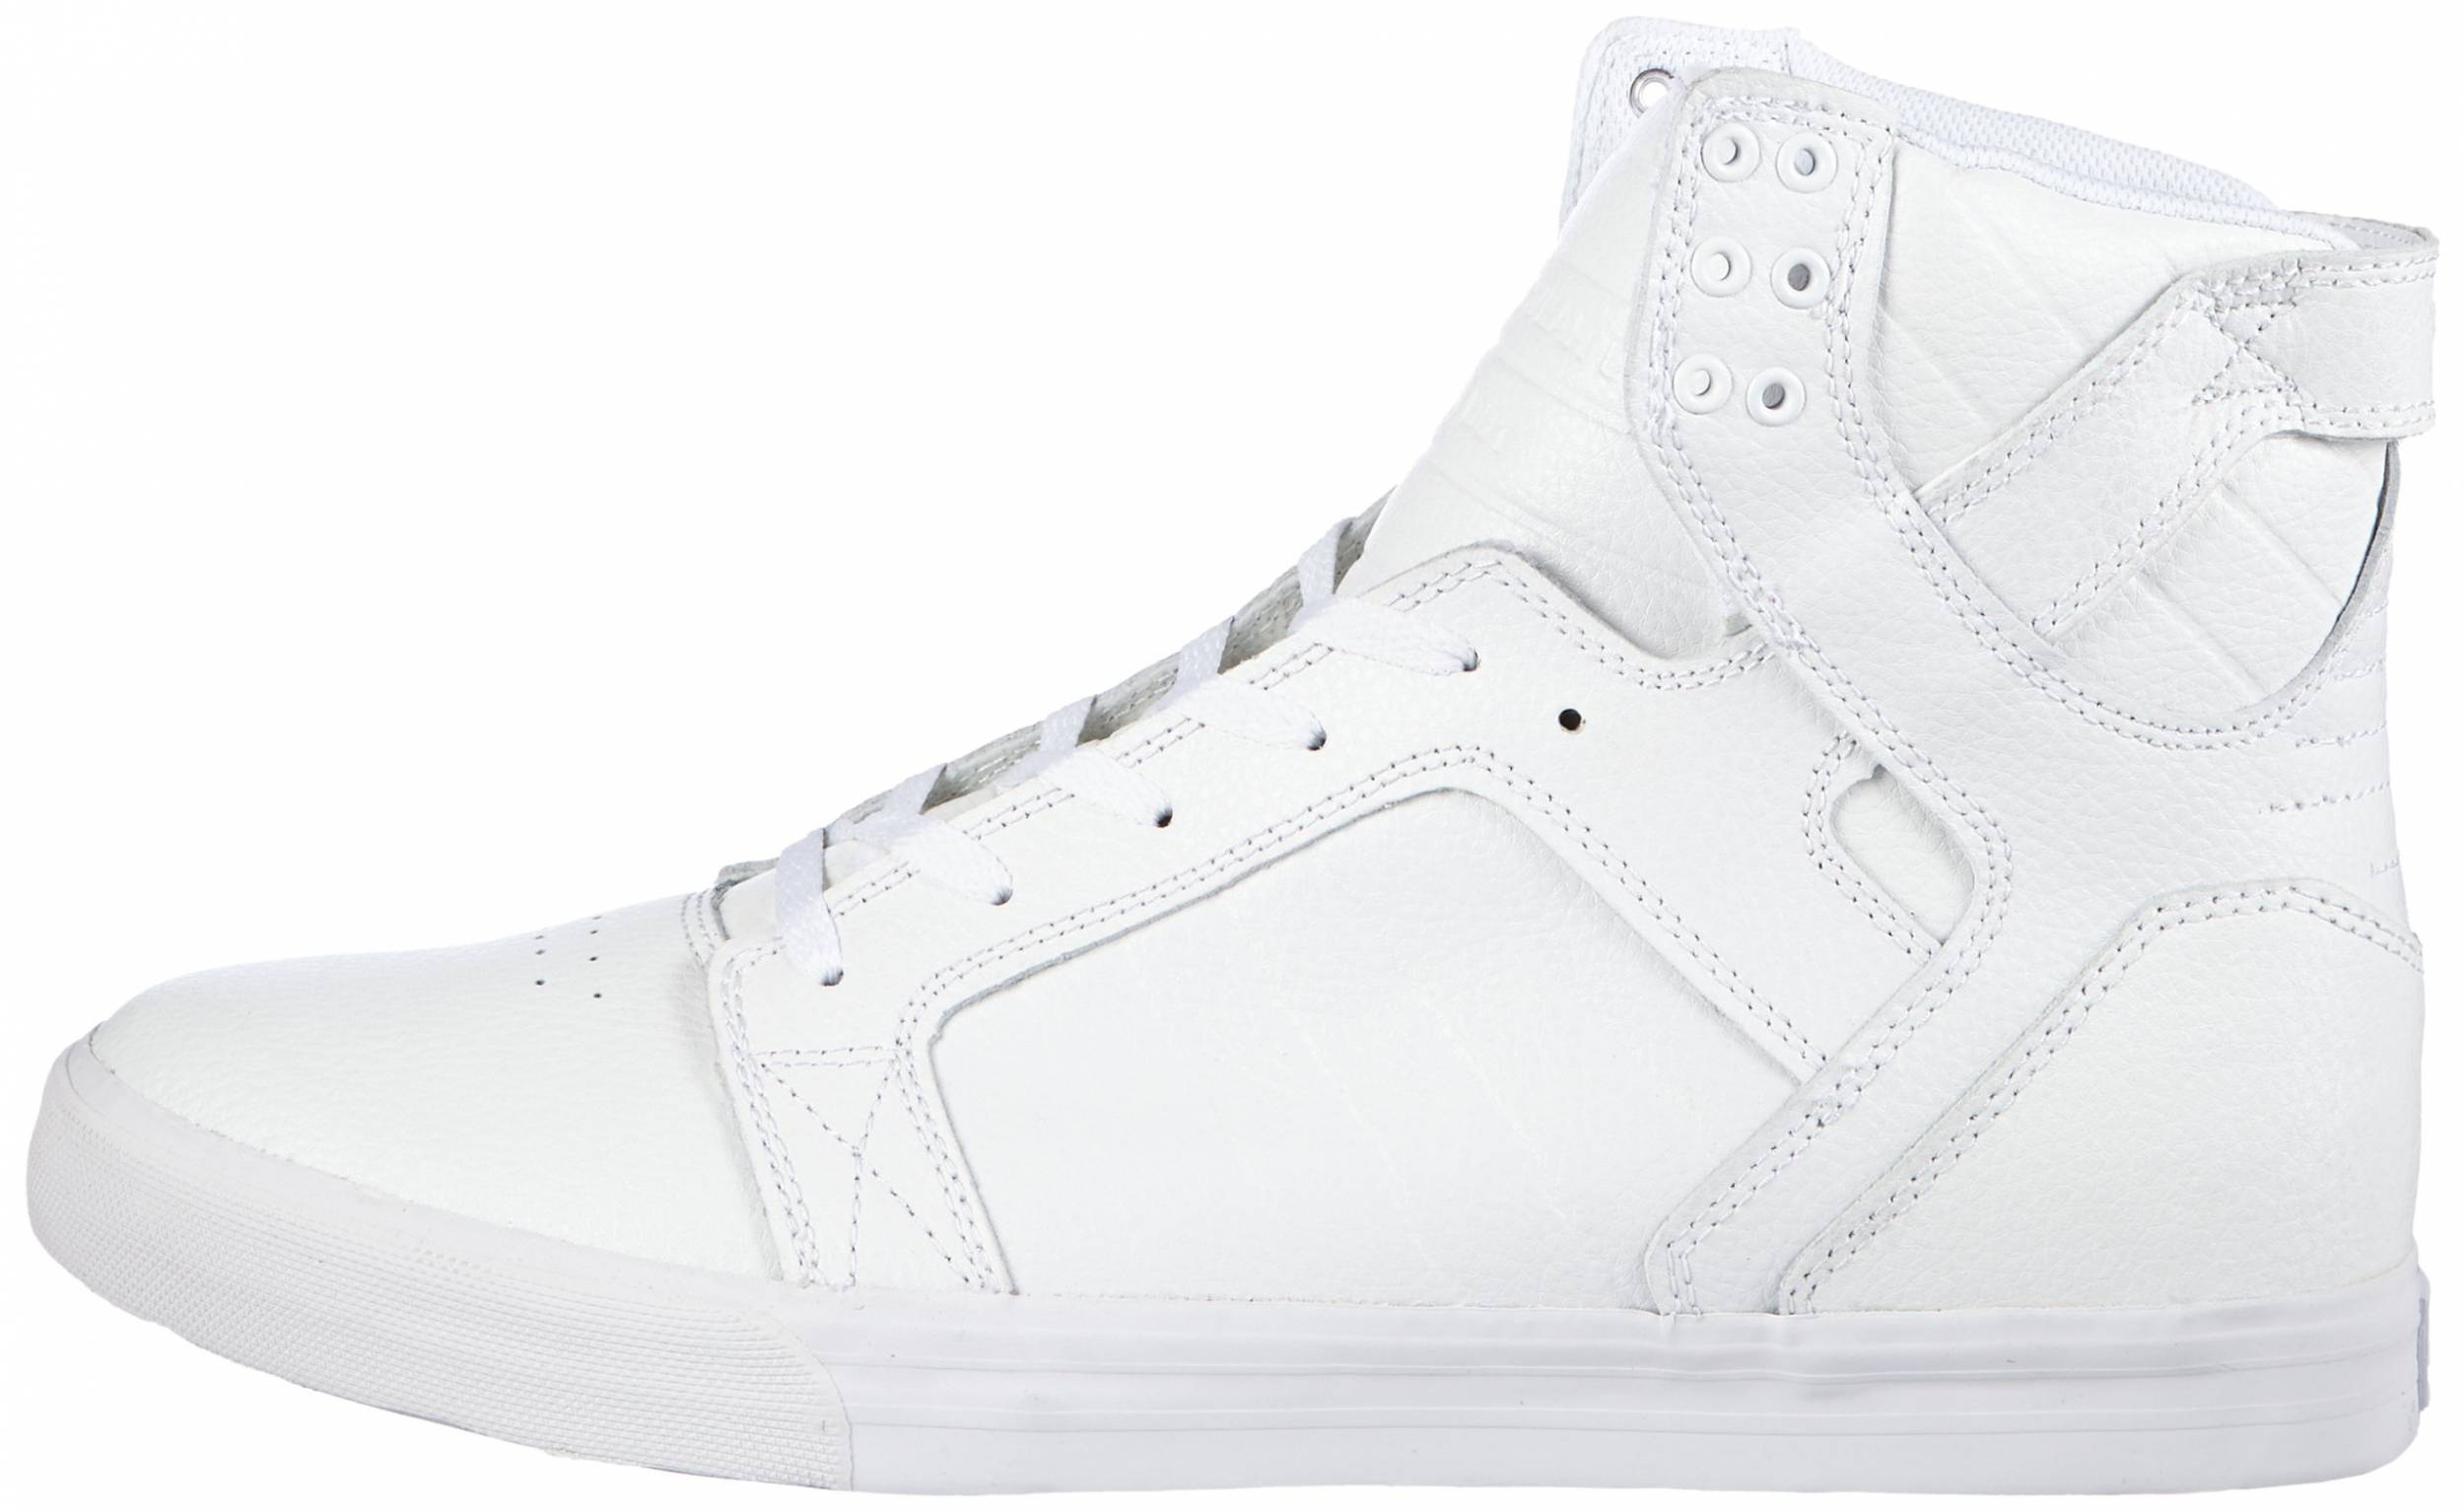 Only $37 + Review of Supra Skytop